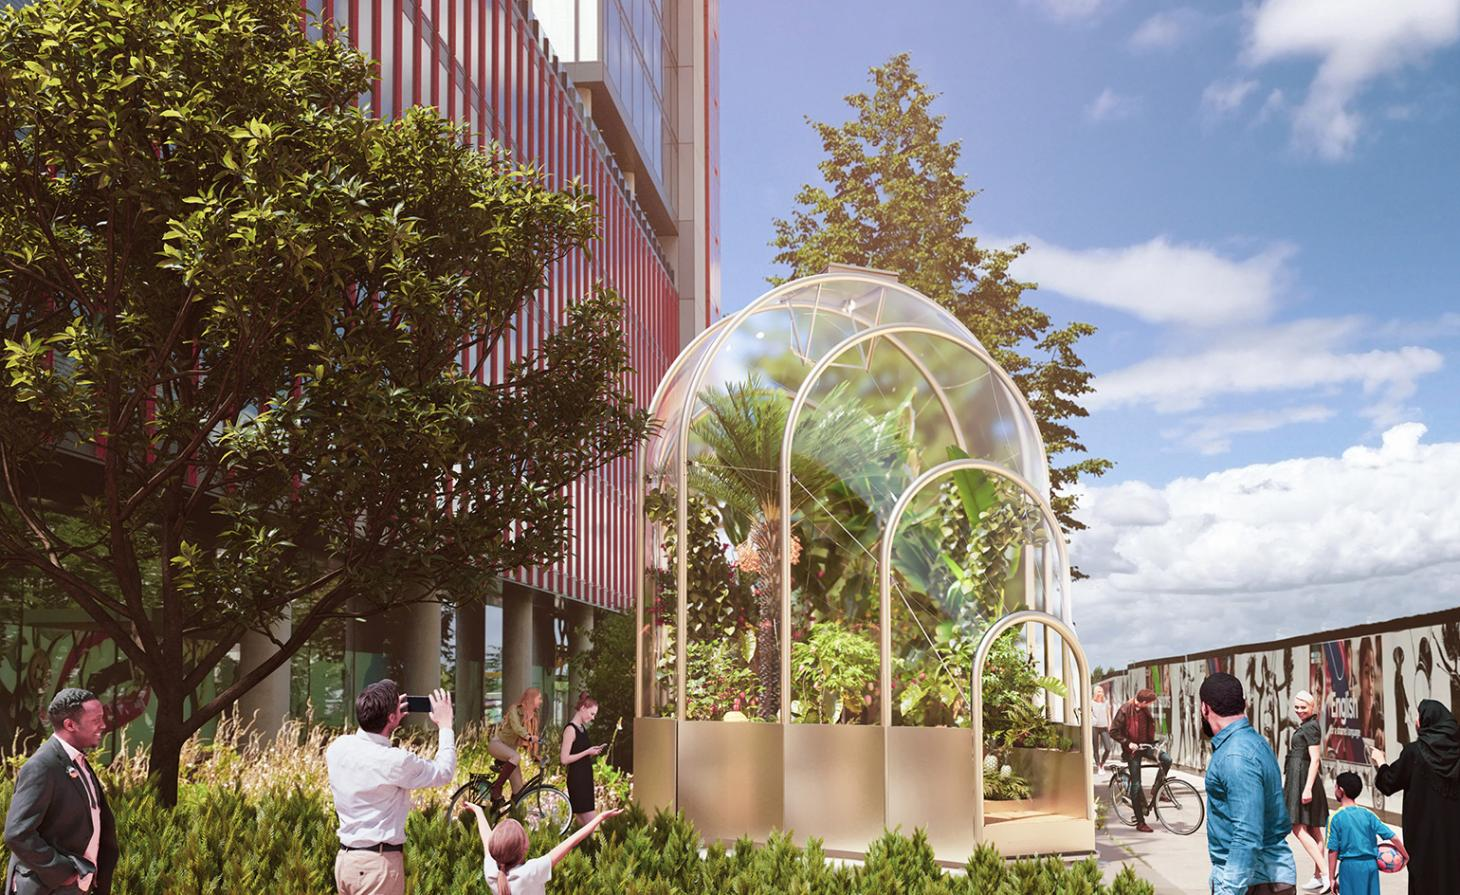 Hot House by Studio Weave greenhouse installation at Westfield Stratford